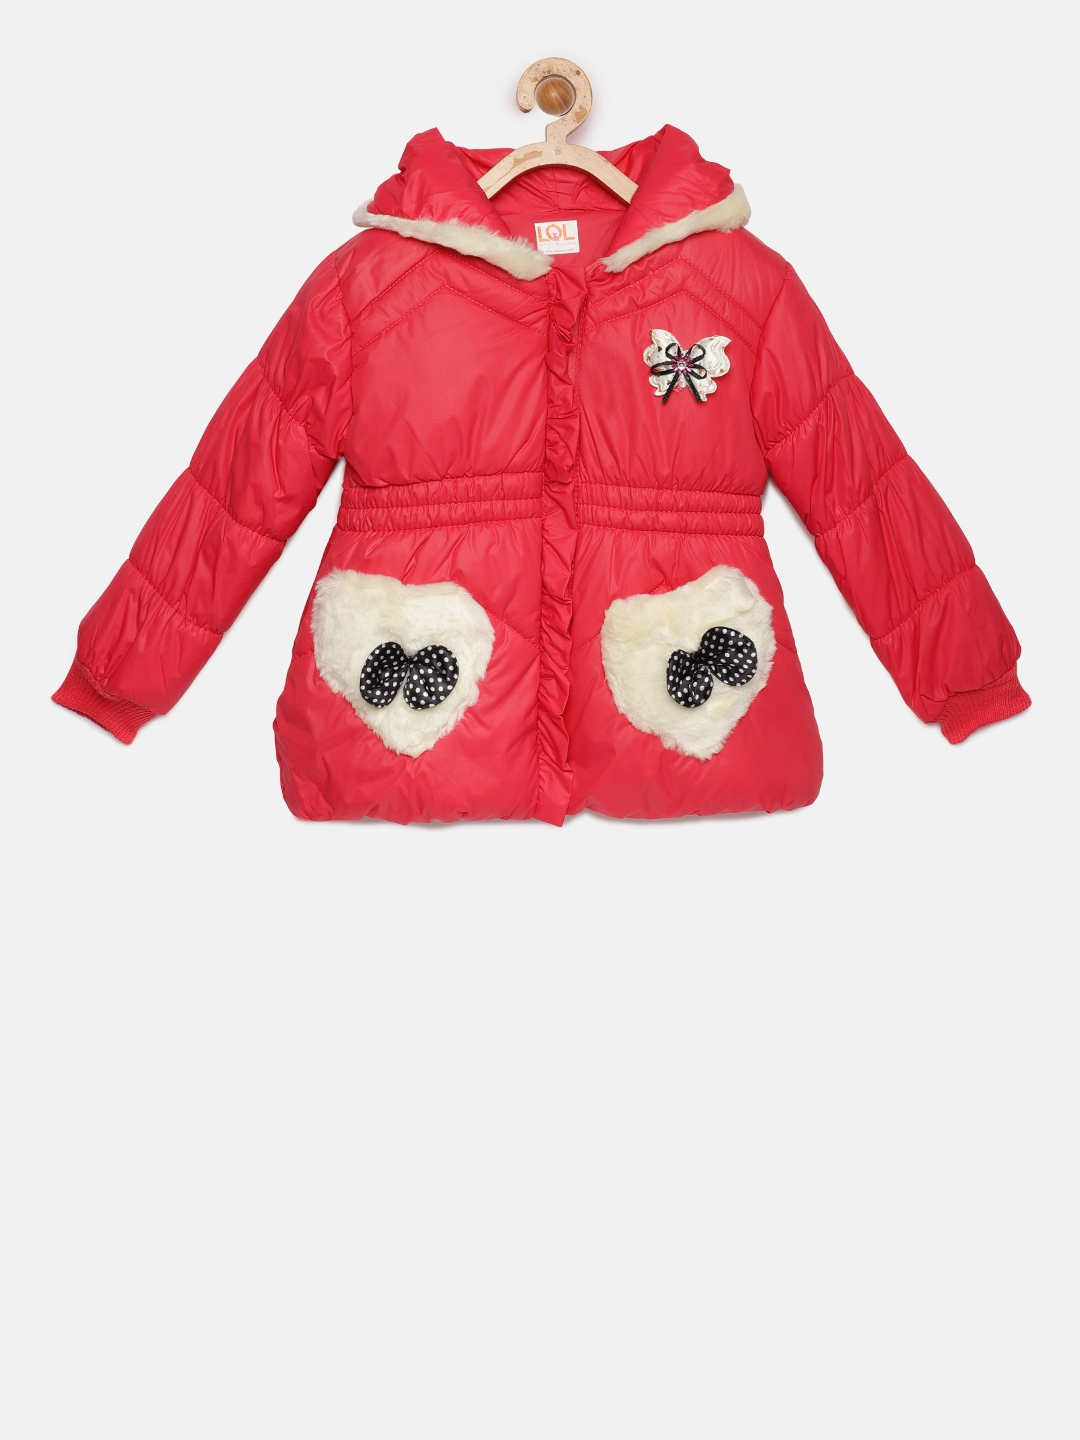 82225f0b6a1e Buy LOL Land Of Littles Girls Red Puffer Jacket With Faux Fur ...